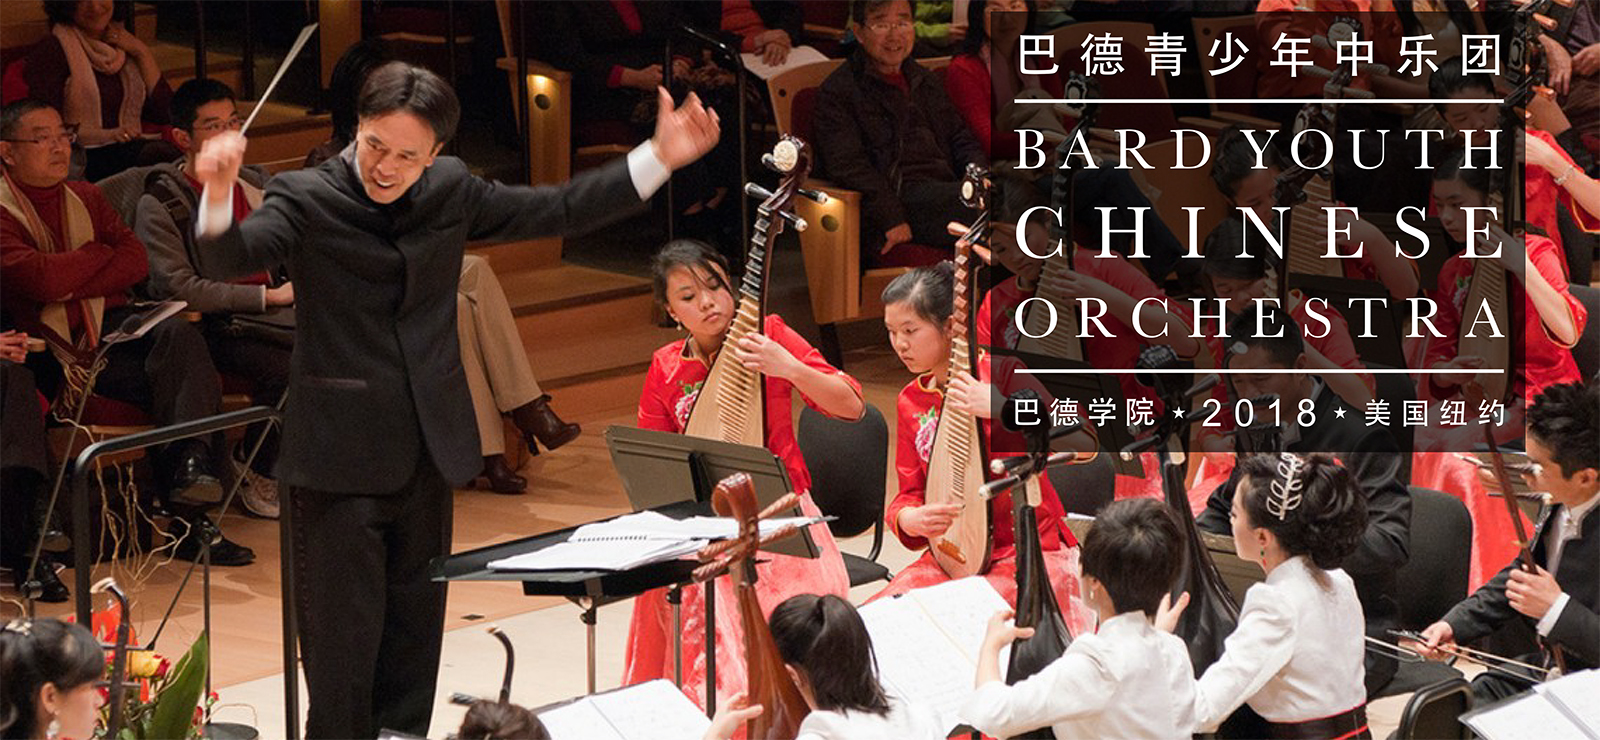 [Bard Youth Chinese Orchestra]